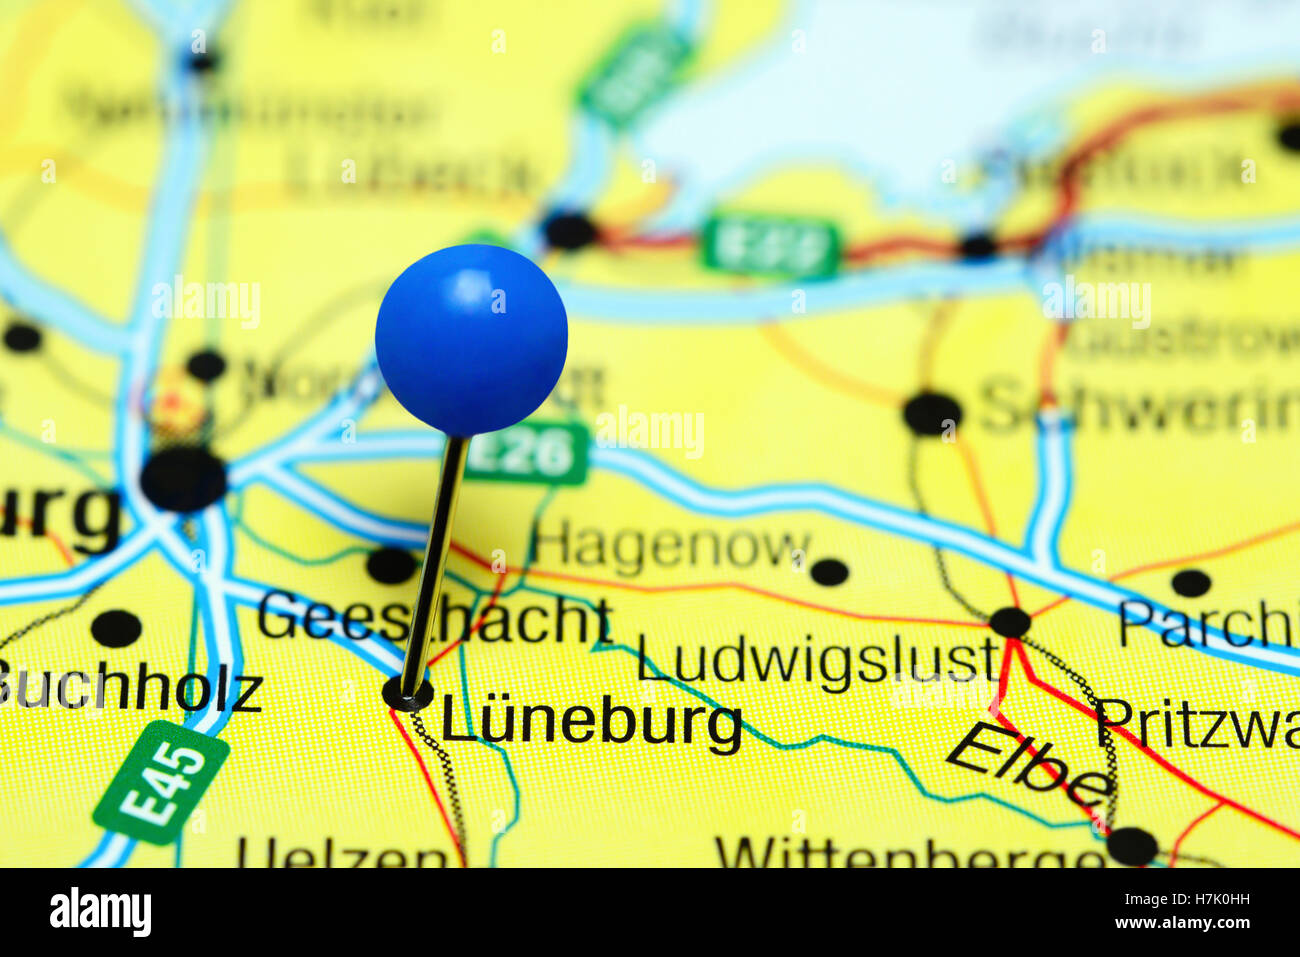 Luneburg Pinned On A Map Of Germany Stock Photo Royalty Free - Luneburg germany map